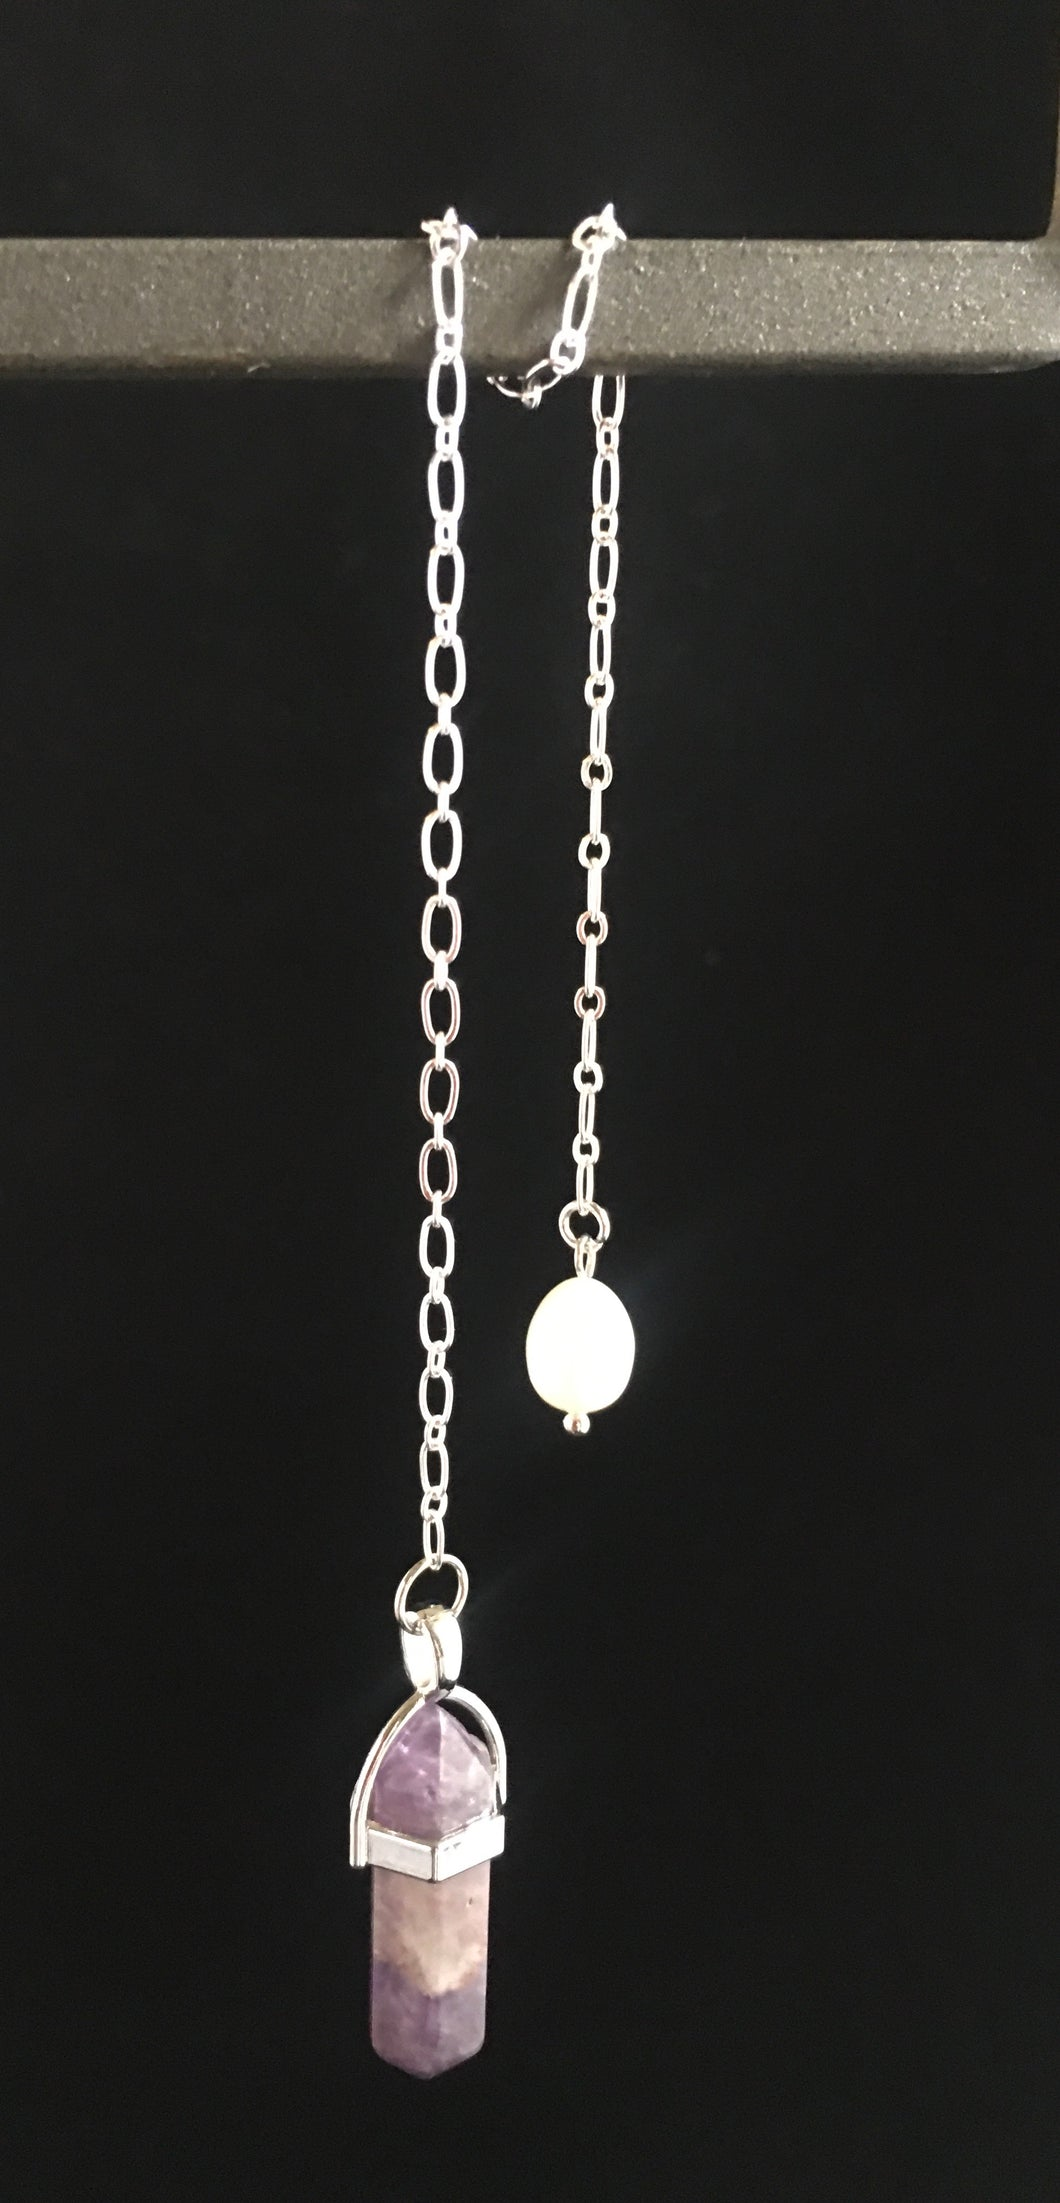 Pendulum ~ Amethyst Point on Silver Chain & Pearl Fob